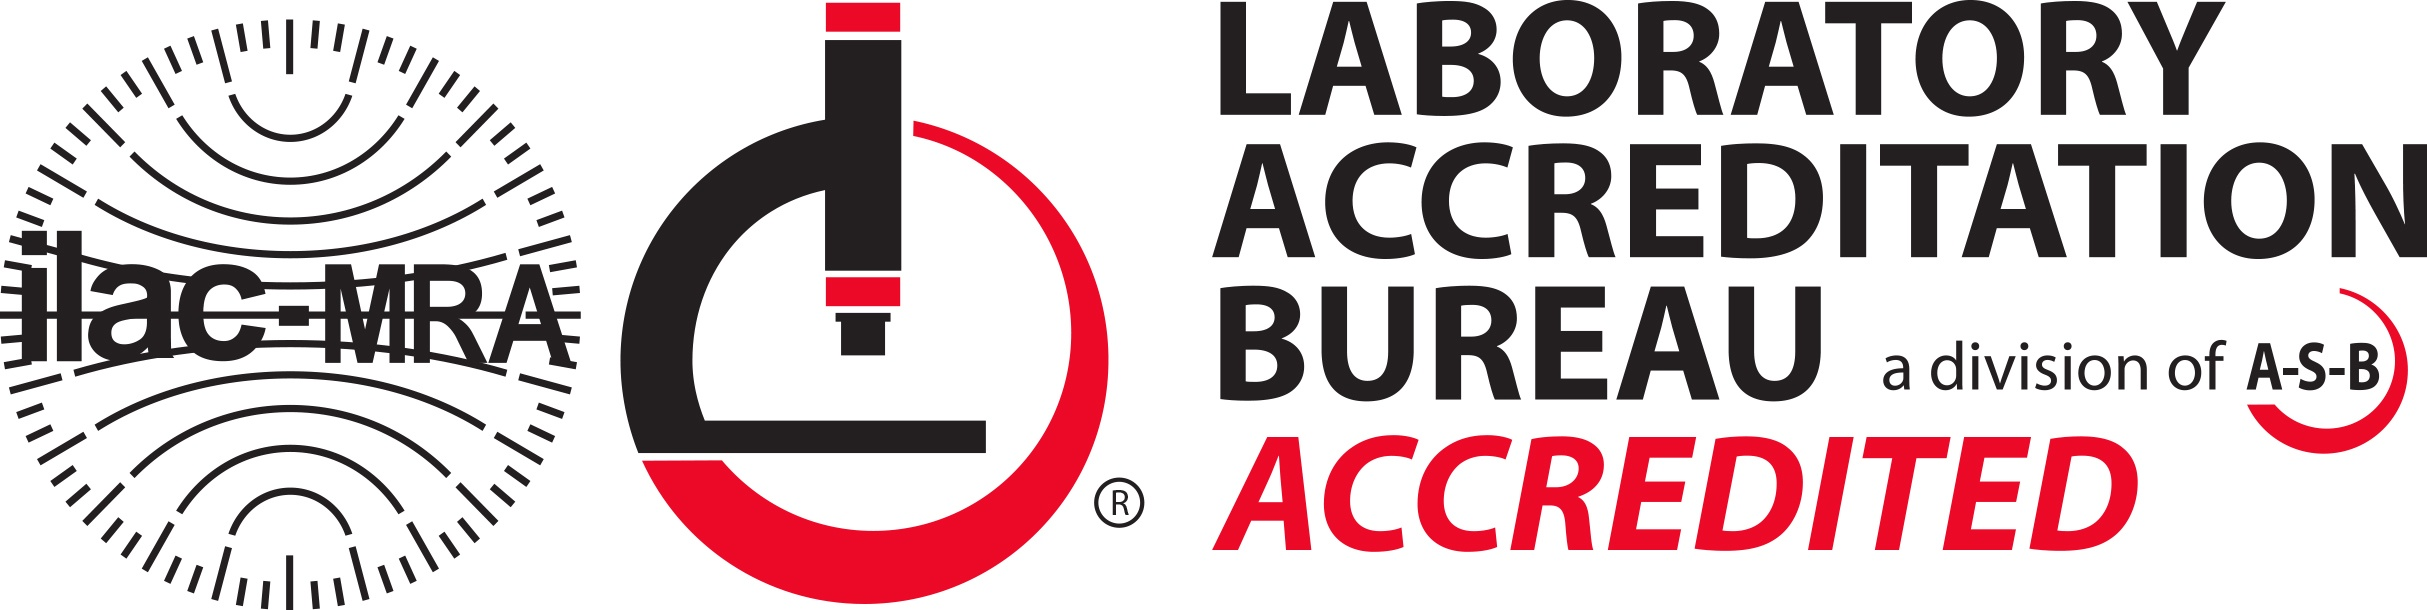 LAB accredited to ISO17025 Alliance Calibration